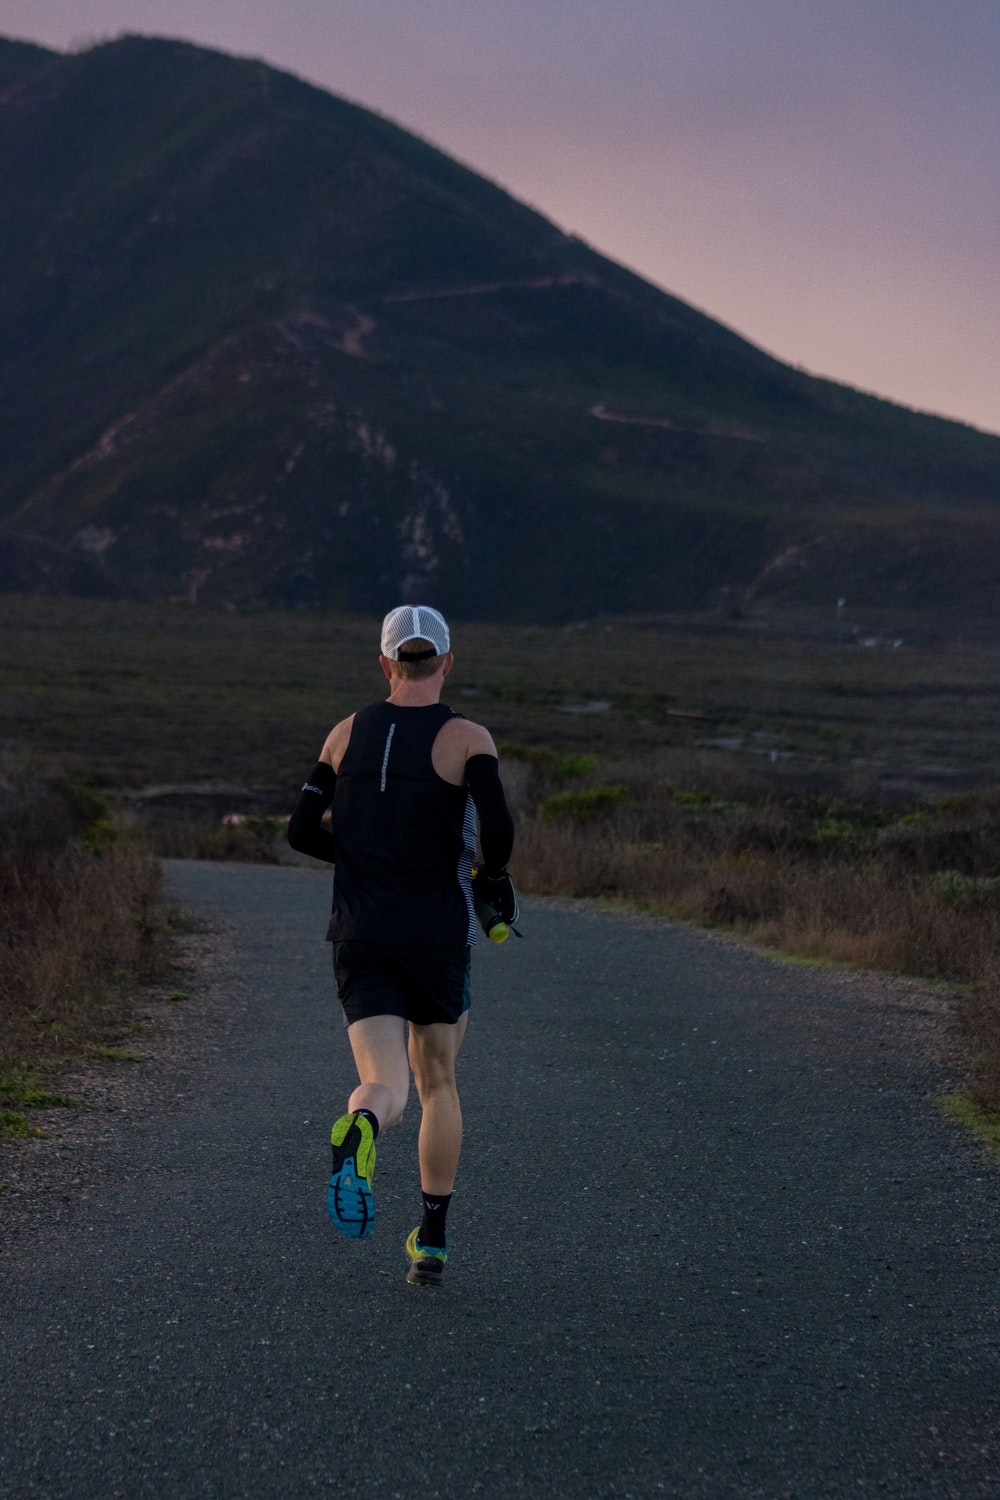 woman jogging on gray road across mountain during daytime